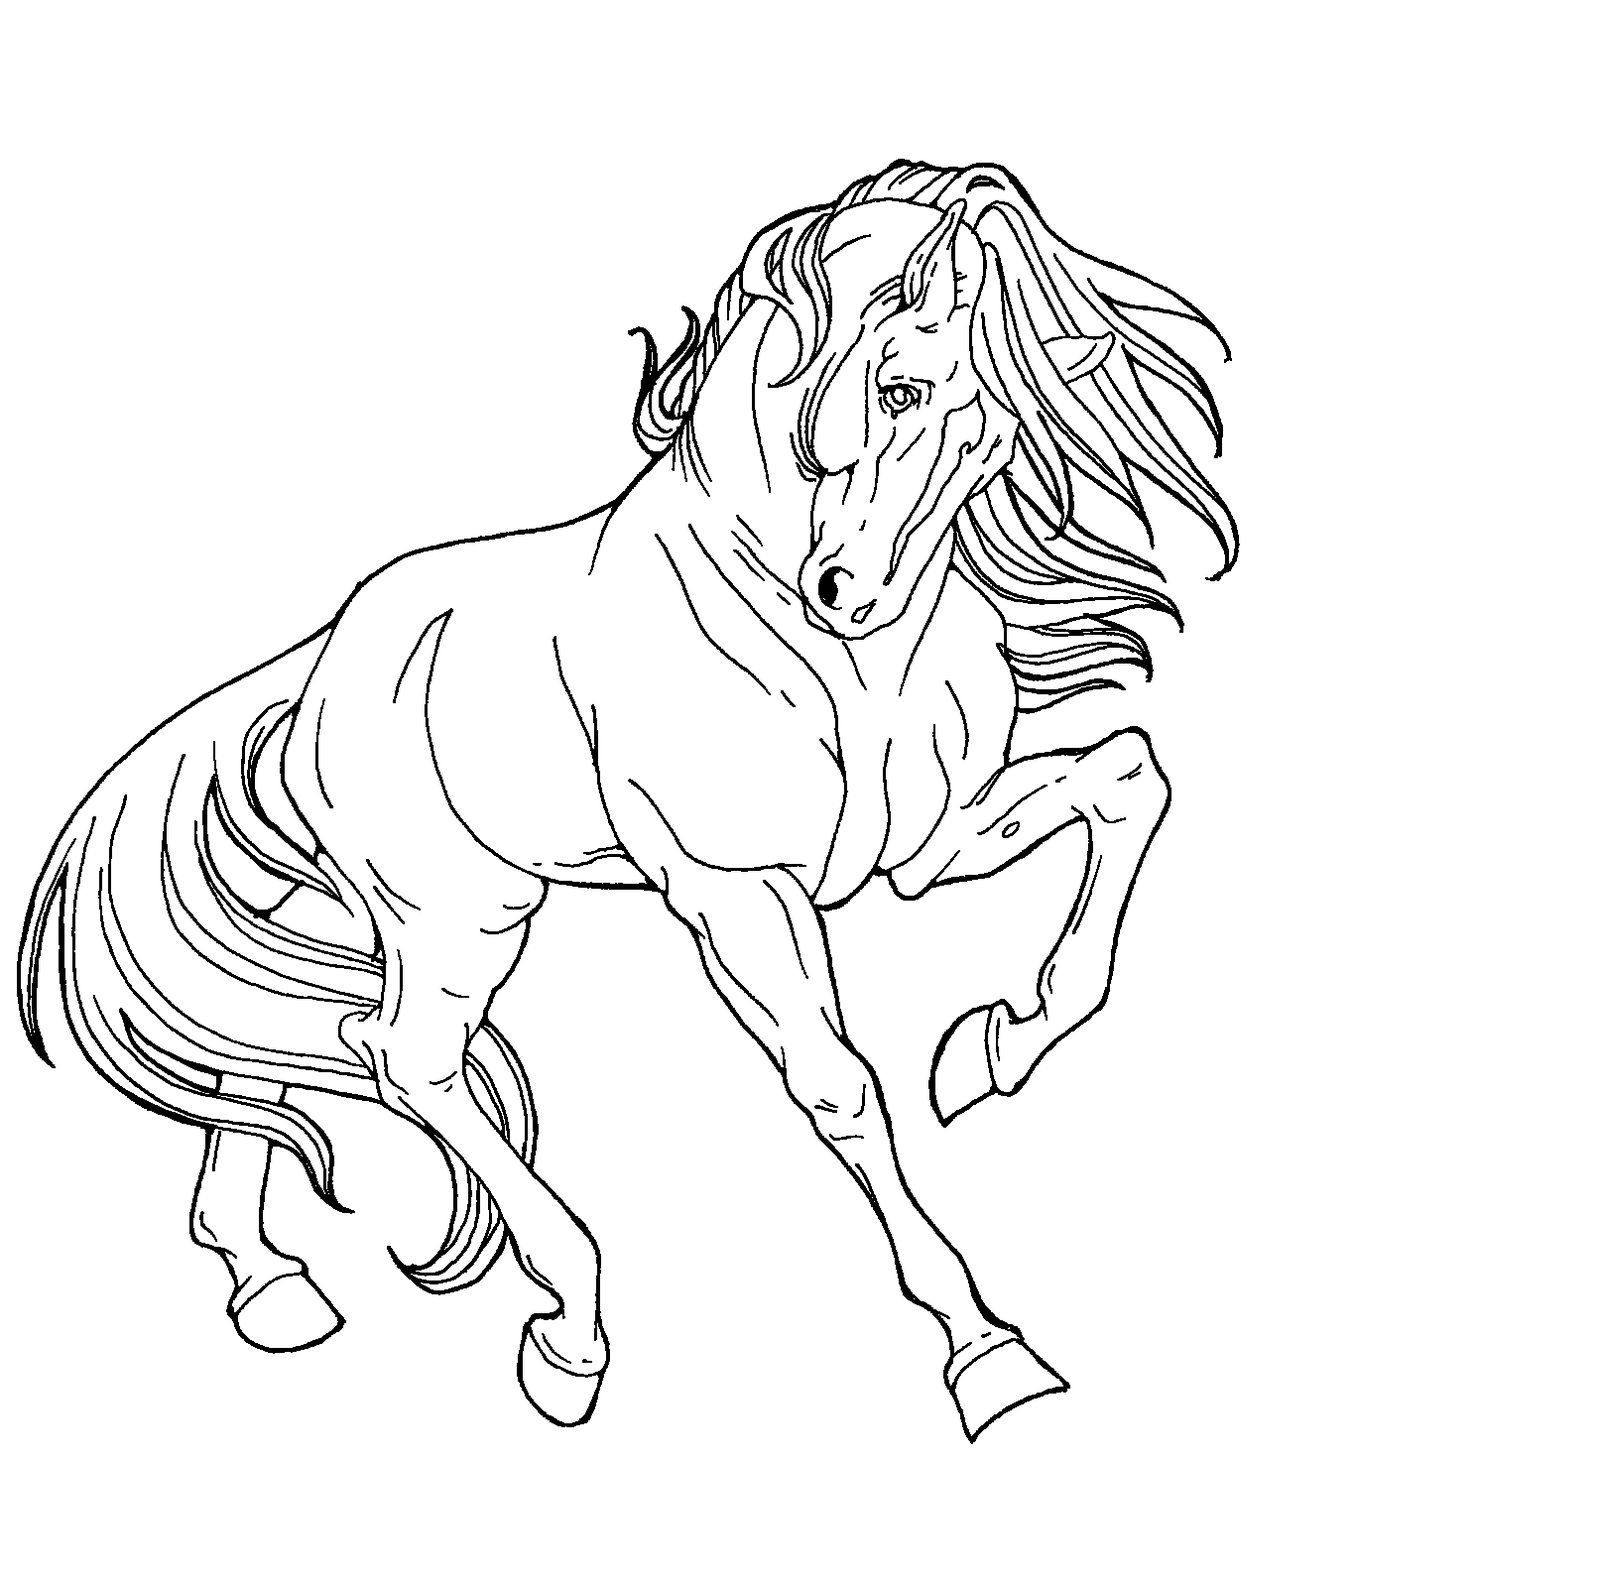 Free Line Art Proud Horse By Applehunter On Deviantart Horse Drawings Horse Coloring Pages Animal Drawings [ 1584 x 1600 Pixel ]